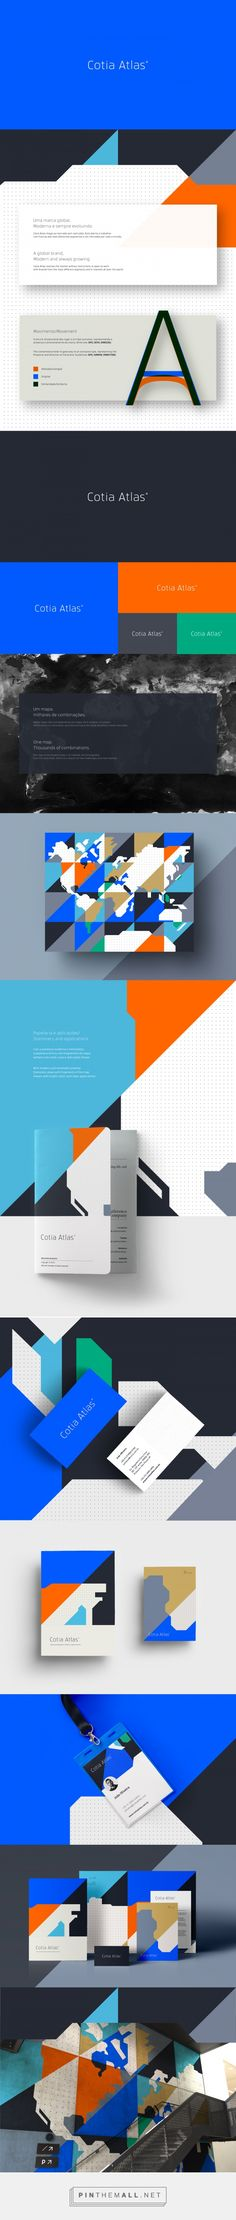 Cotia Atlas on Behance... - a grouped images picture - Pin Them All